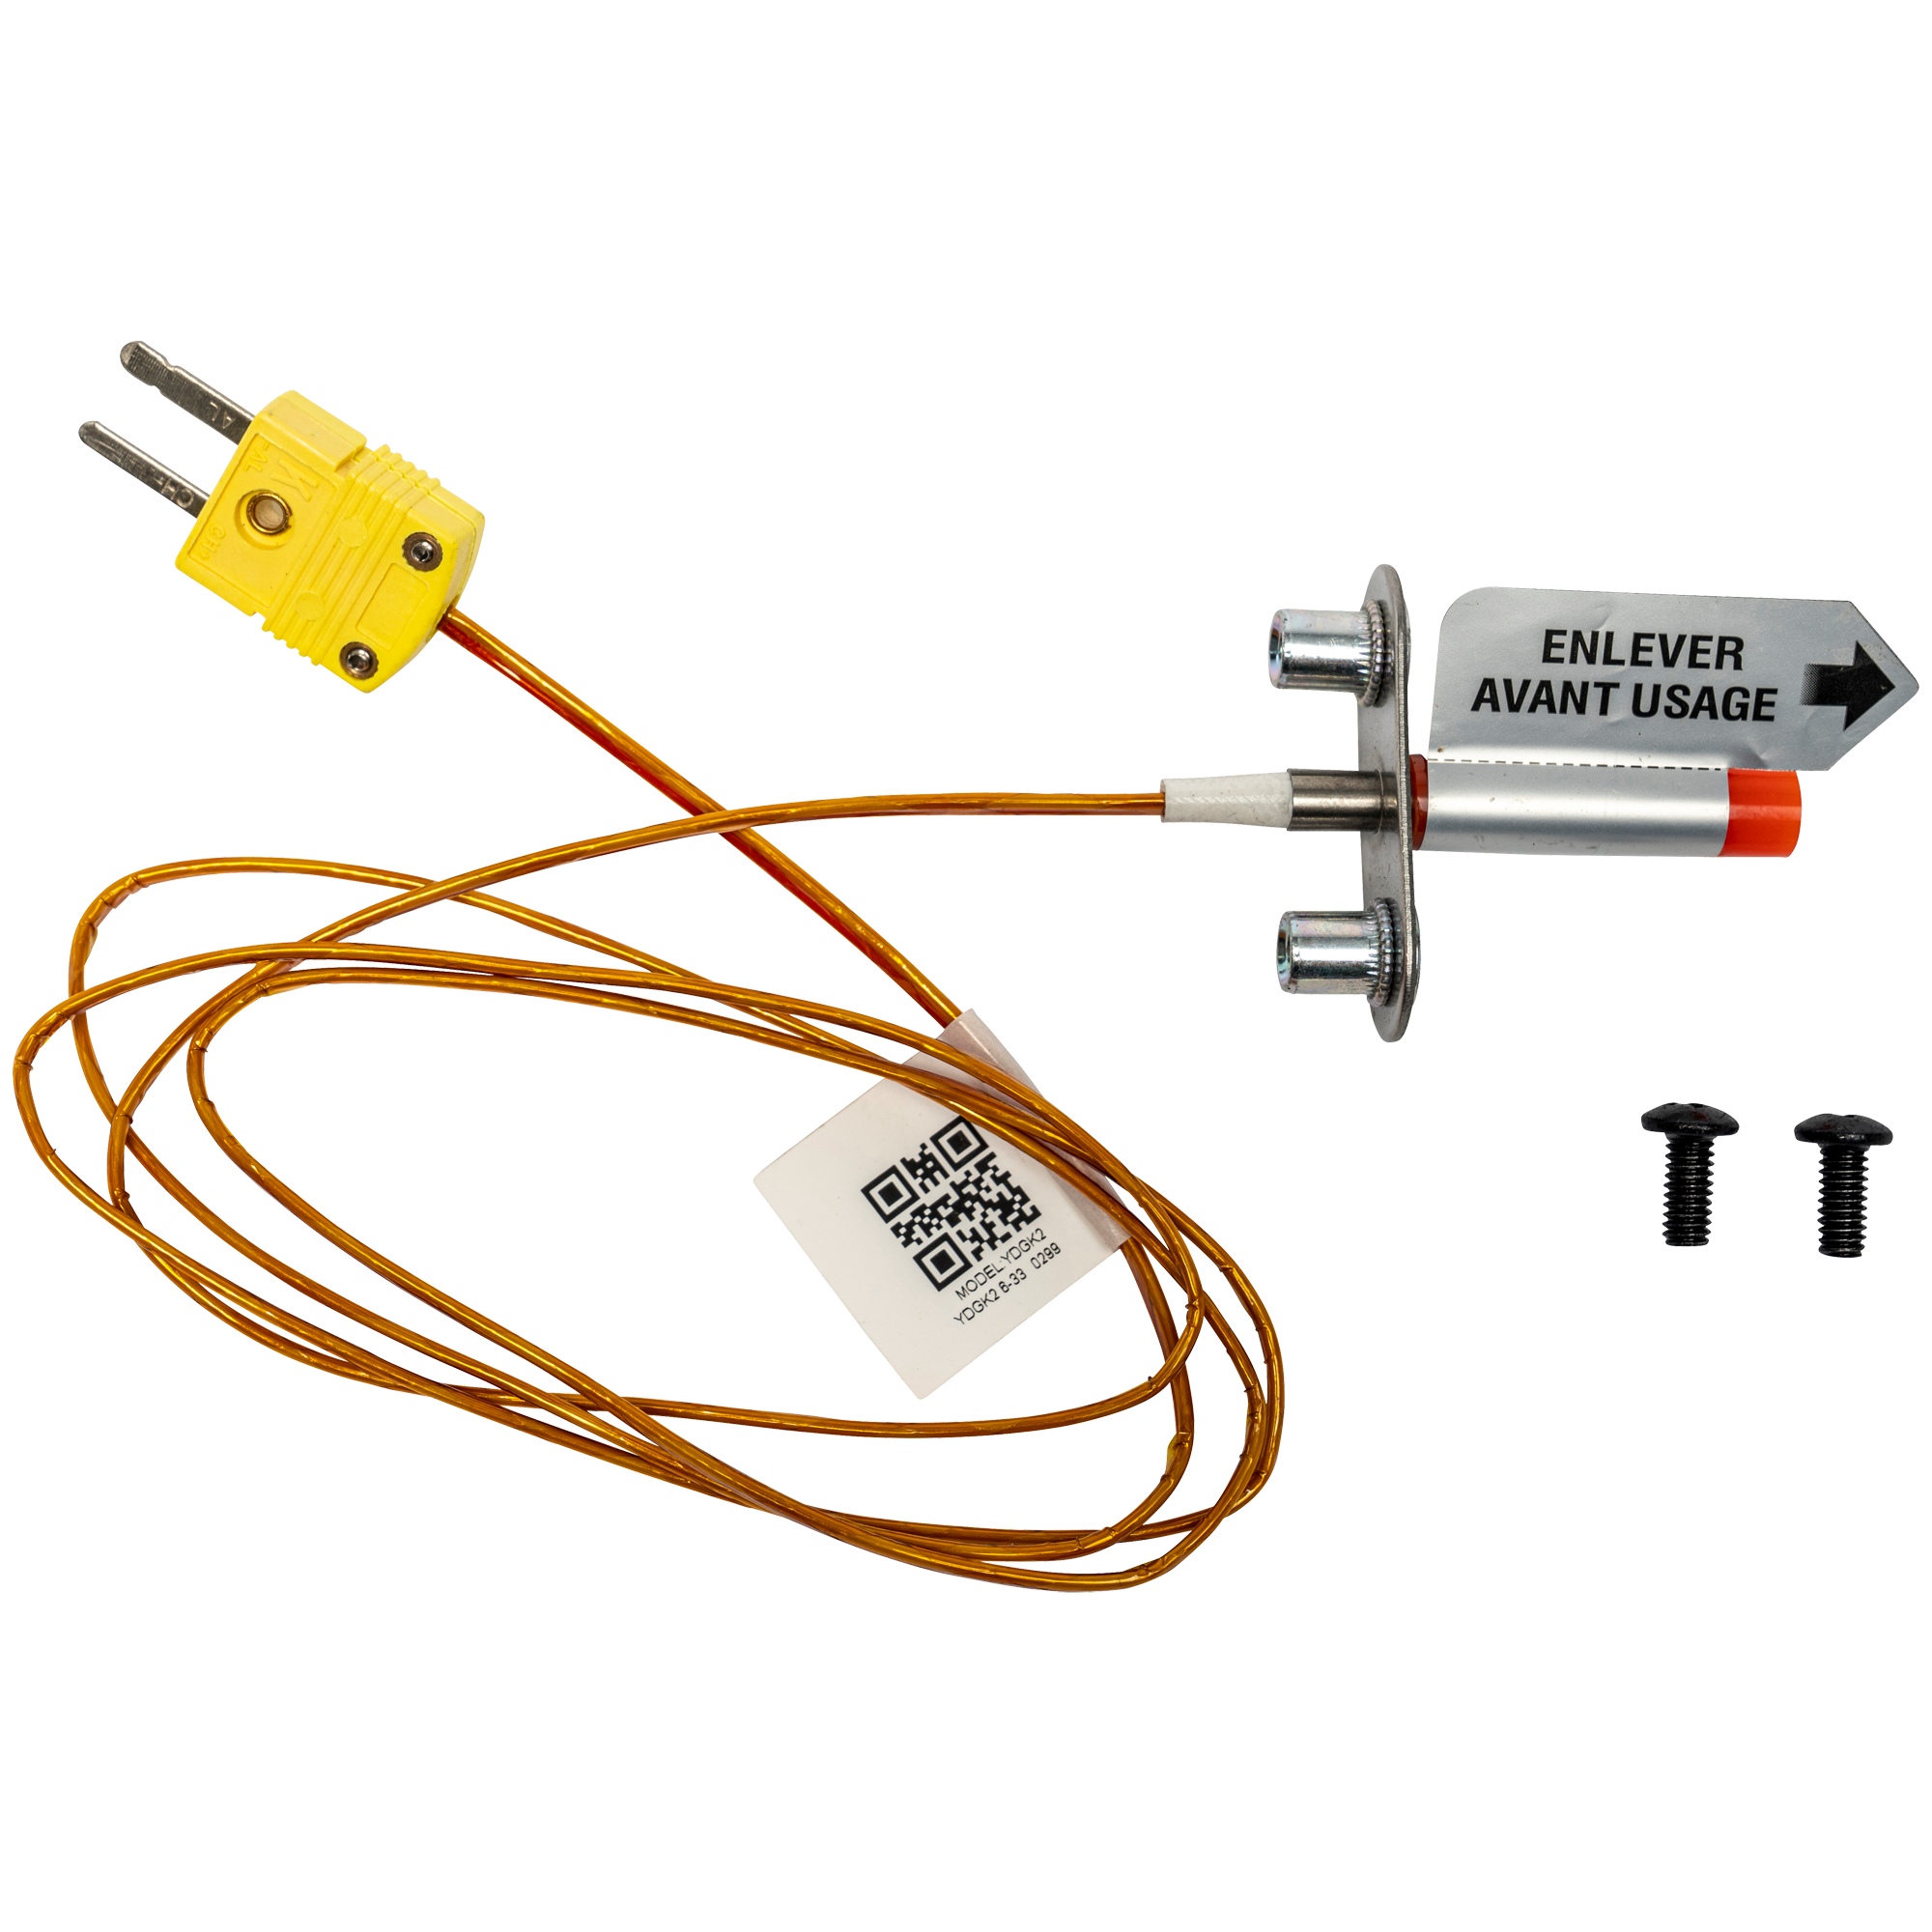 D2 THERMOCOUPLE RTD Fits D2 Pro /& Ironwood Grills KIT0422 FITS DC ONLY